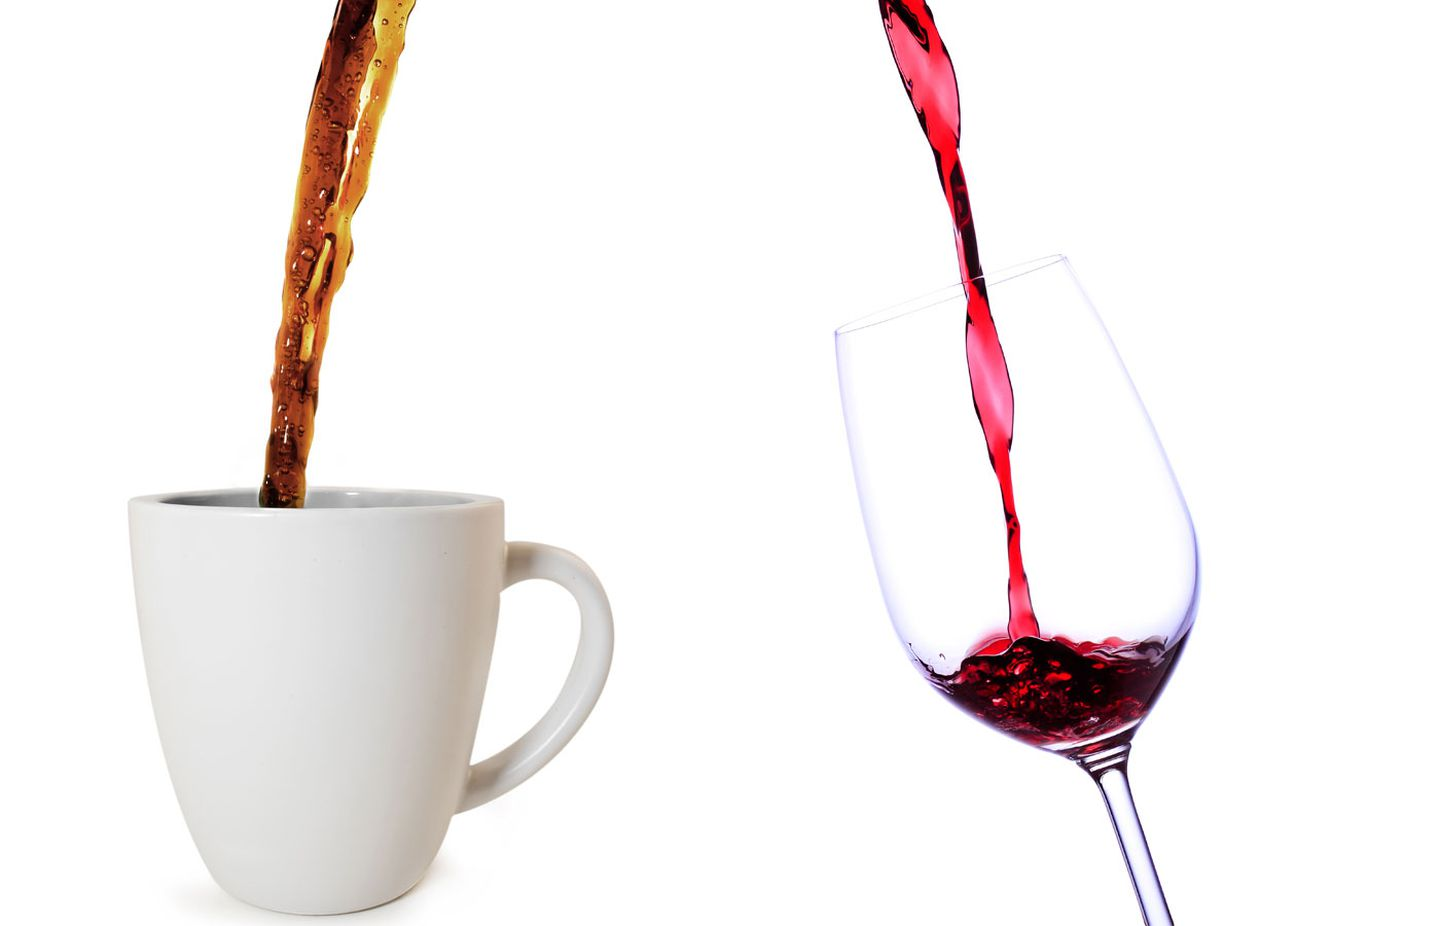 Coffee or wine: which is better for you? - The Boston Globe